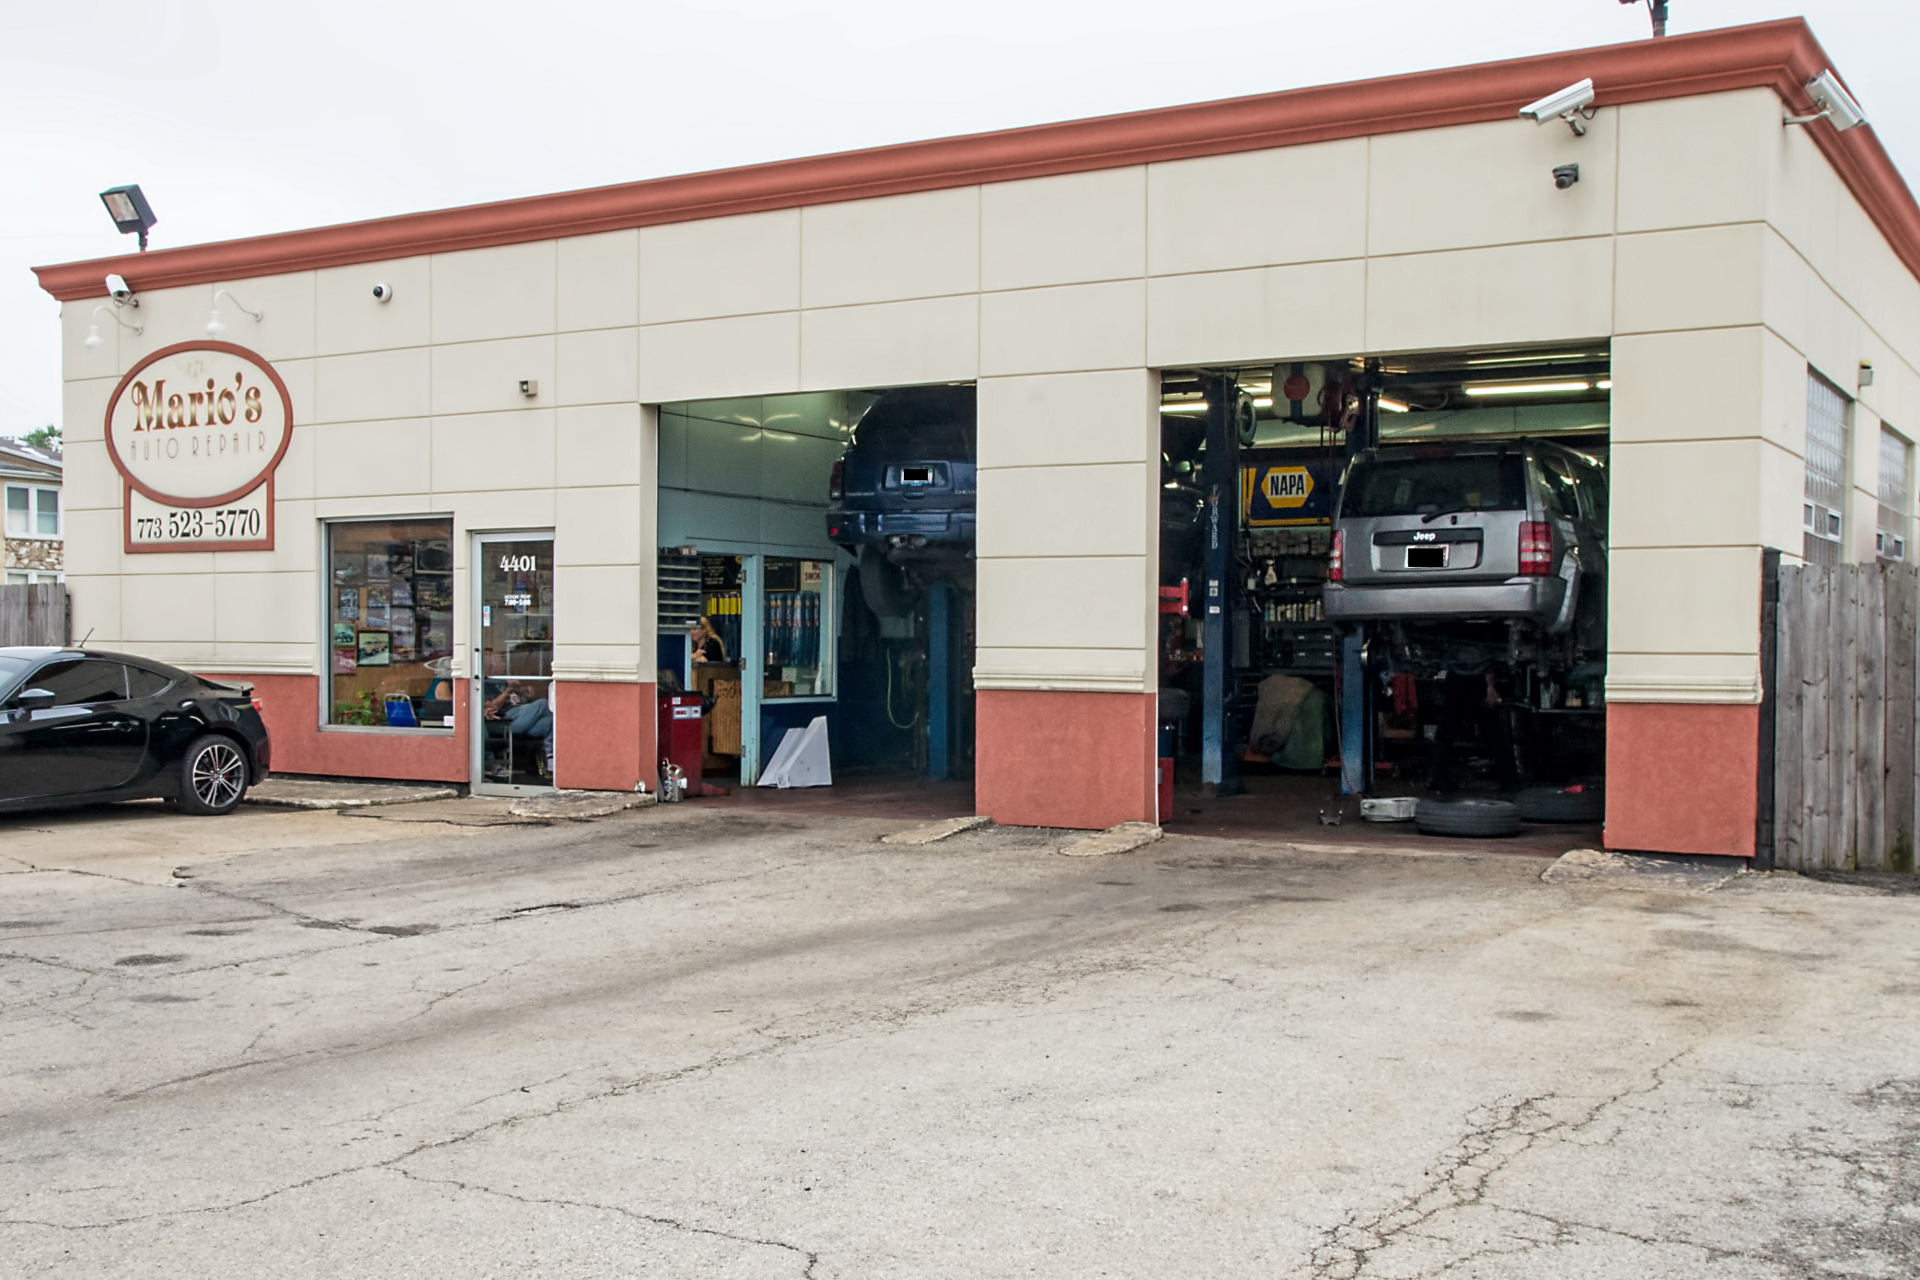 Mario's Auto Repair  Mario's Auto Repair, Inc (773) 523. Garage Door Spring Color Code. Portable Heater For Garage. Milgard Sliding Door. Epoxyshield Garage Floor Coating Reviews. Sliding Barn Door. Kitchen Storage Cabinets With Doors. French Door Screen Options. Automatic Door Closers